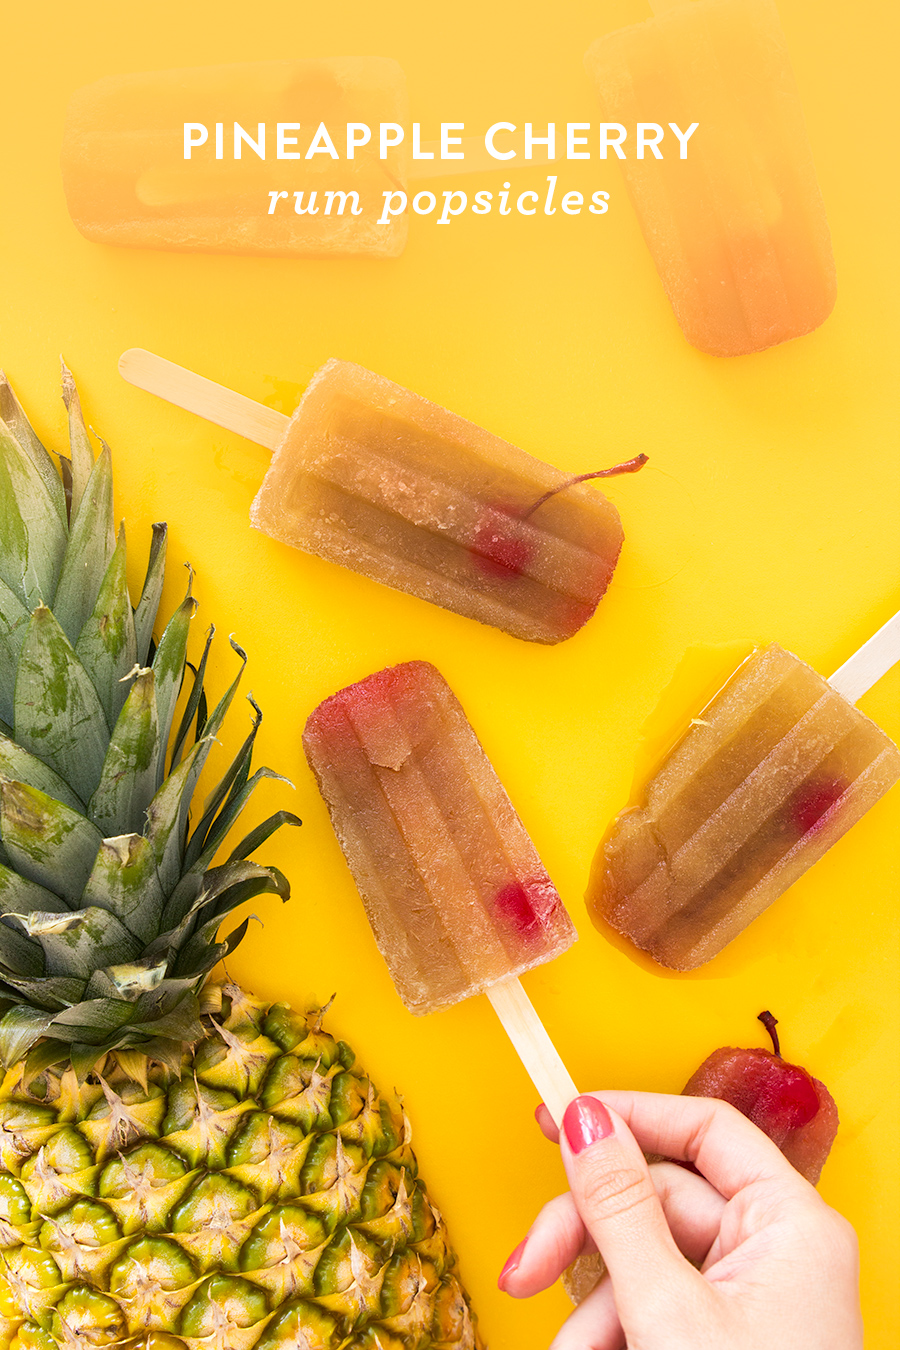 The Mary Pickford cocktail pops are sure to a hit! Serve this frozen version of a classic tropical cocktail at your next summer party!